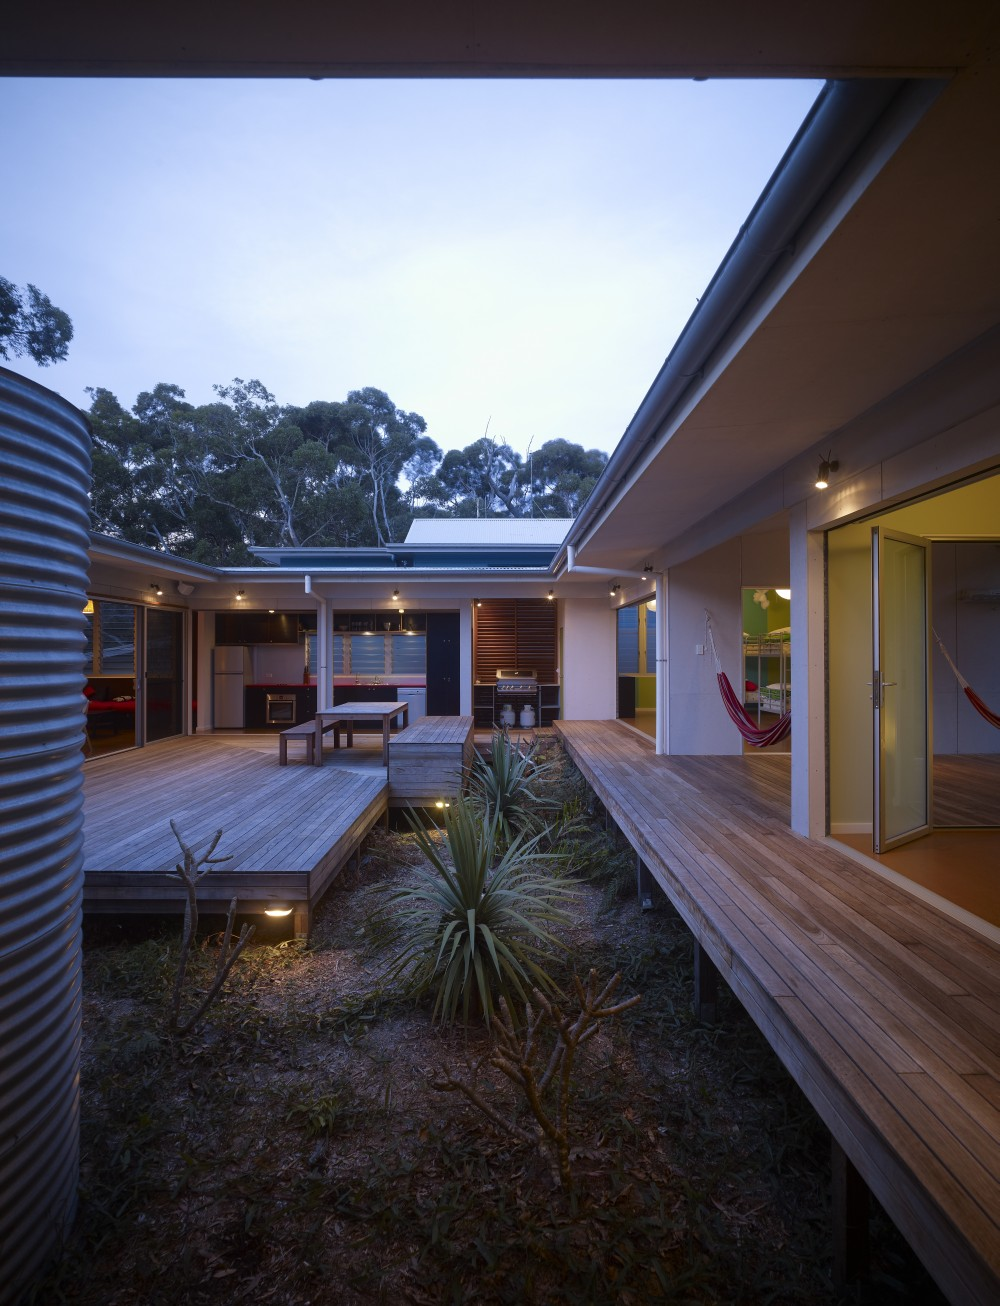 Design Inspiration: The Modern Courtyard House